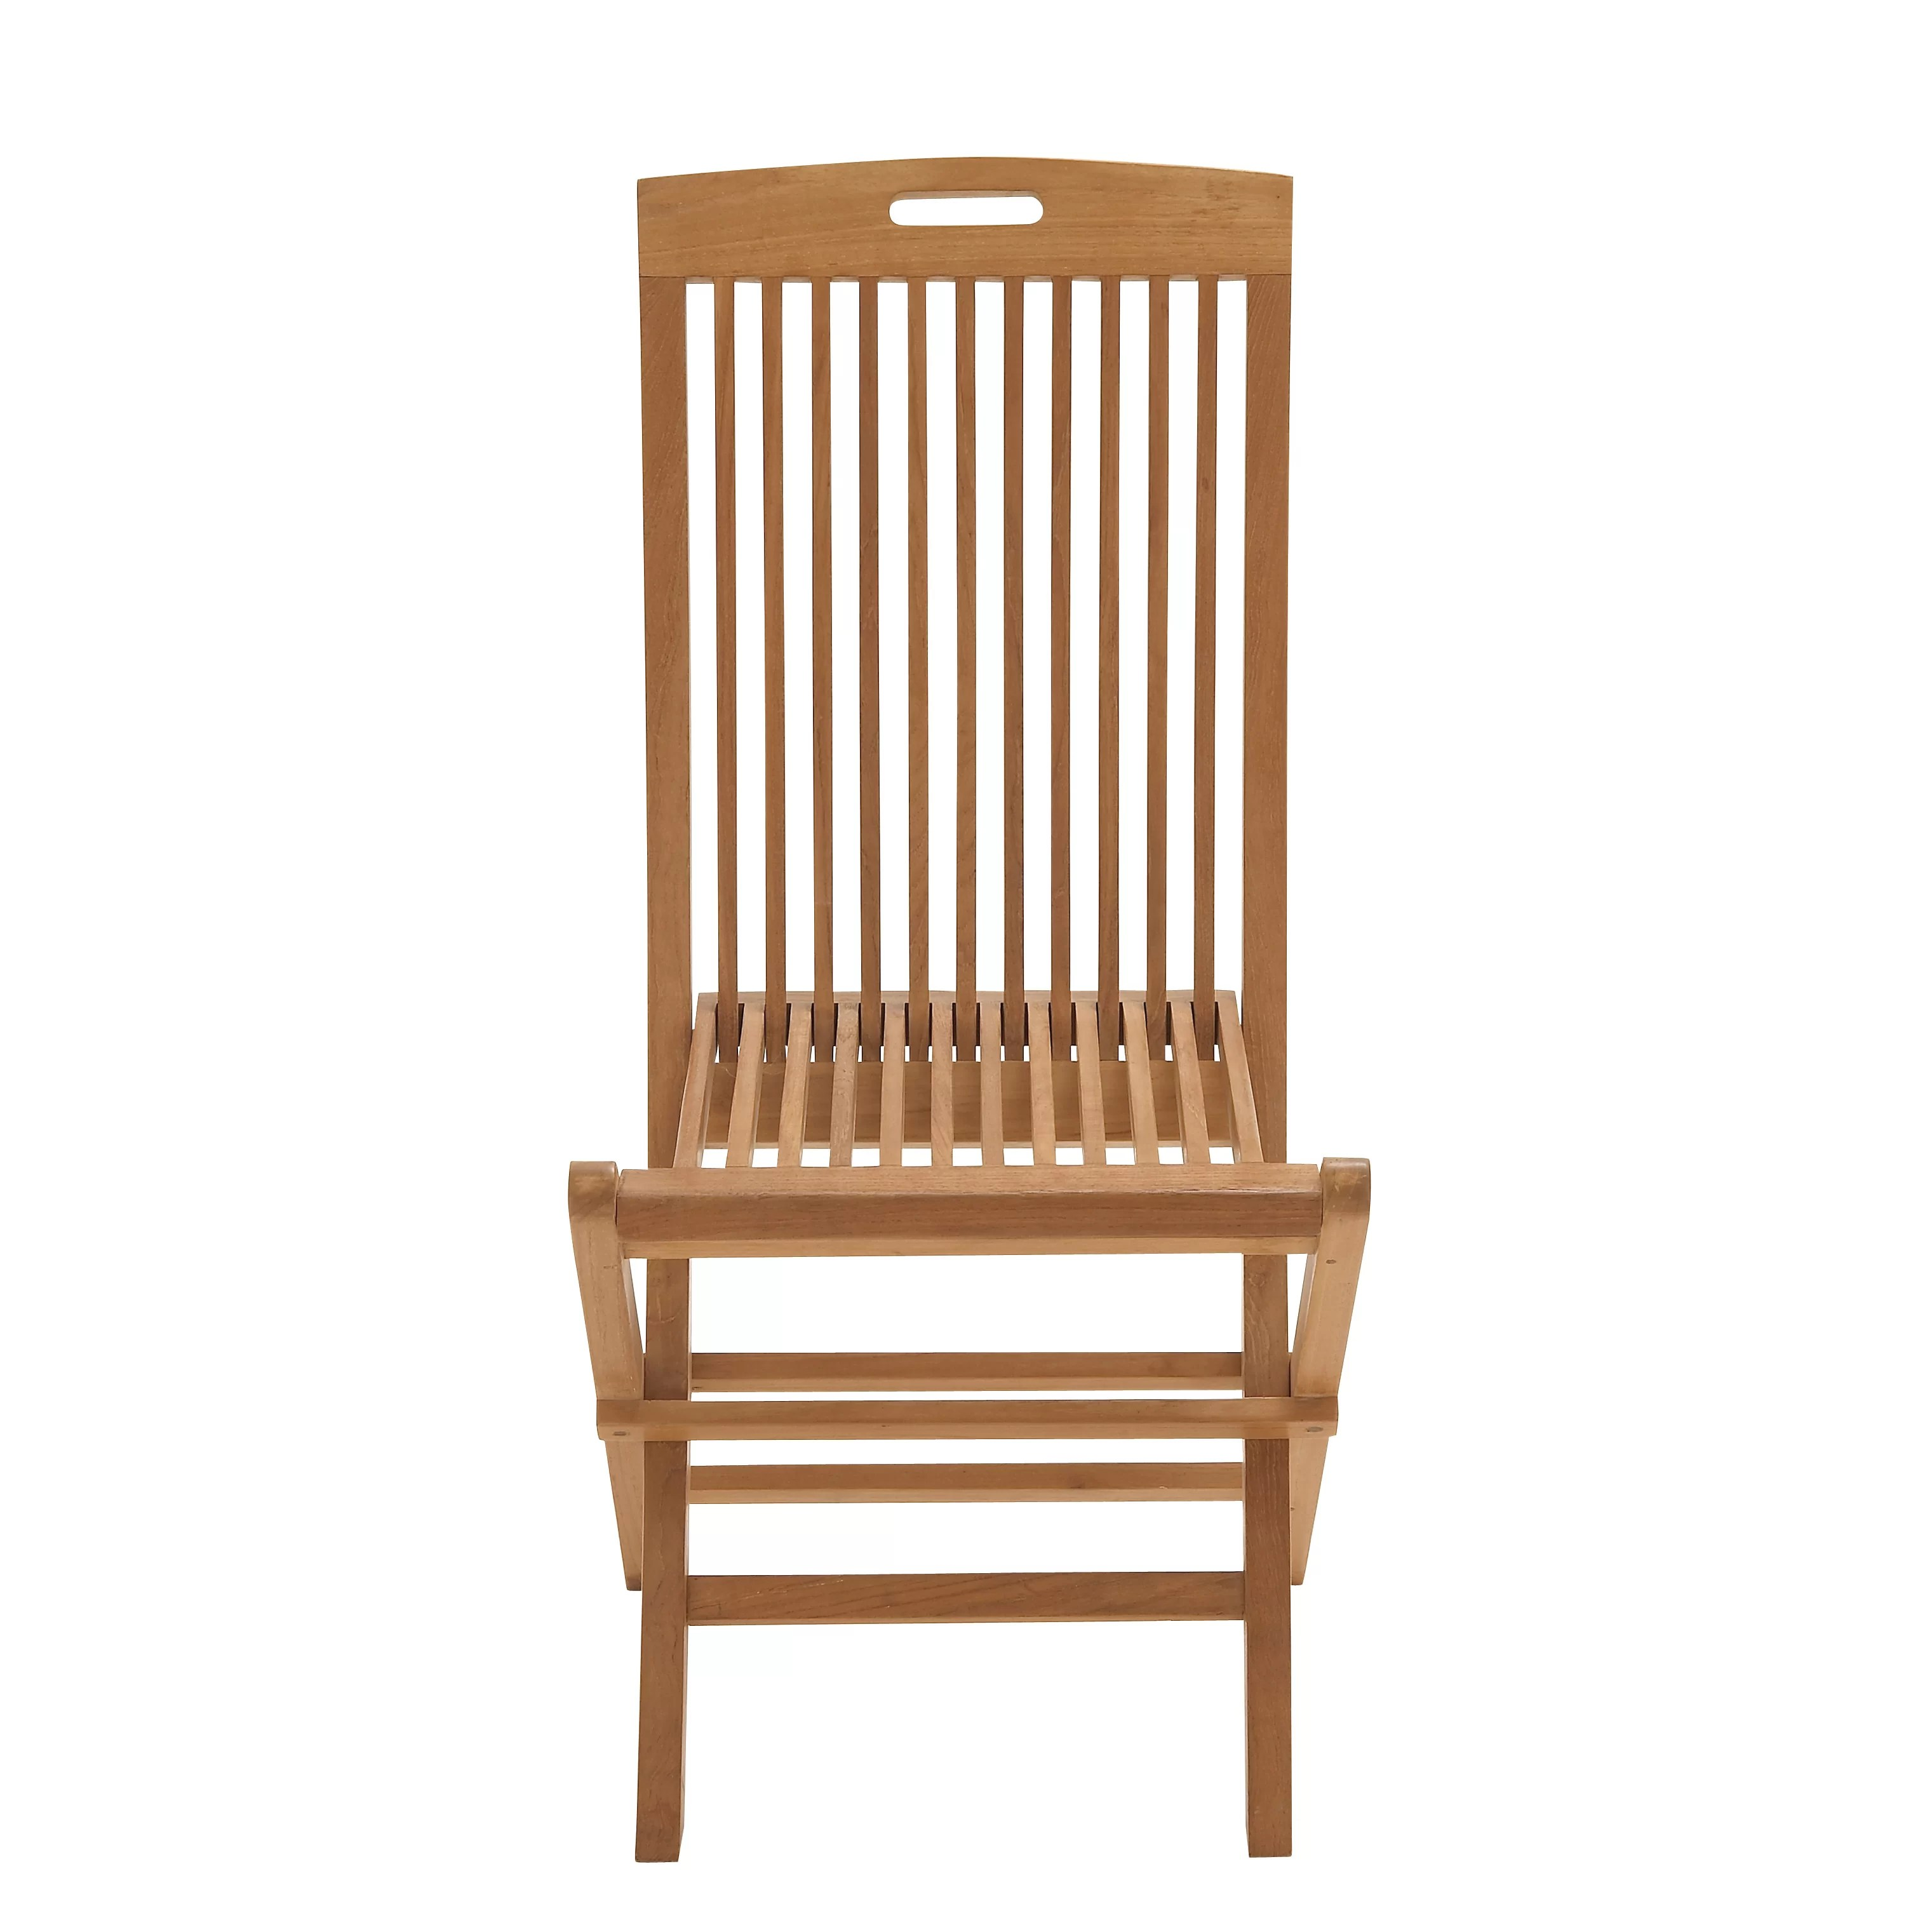 comfortable folding chairs cheap chair covers brisbane woodland imports wood teak